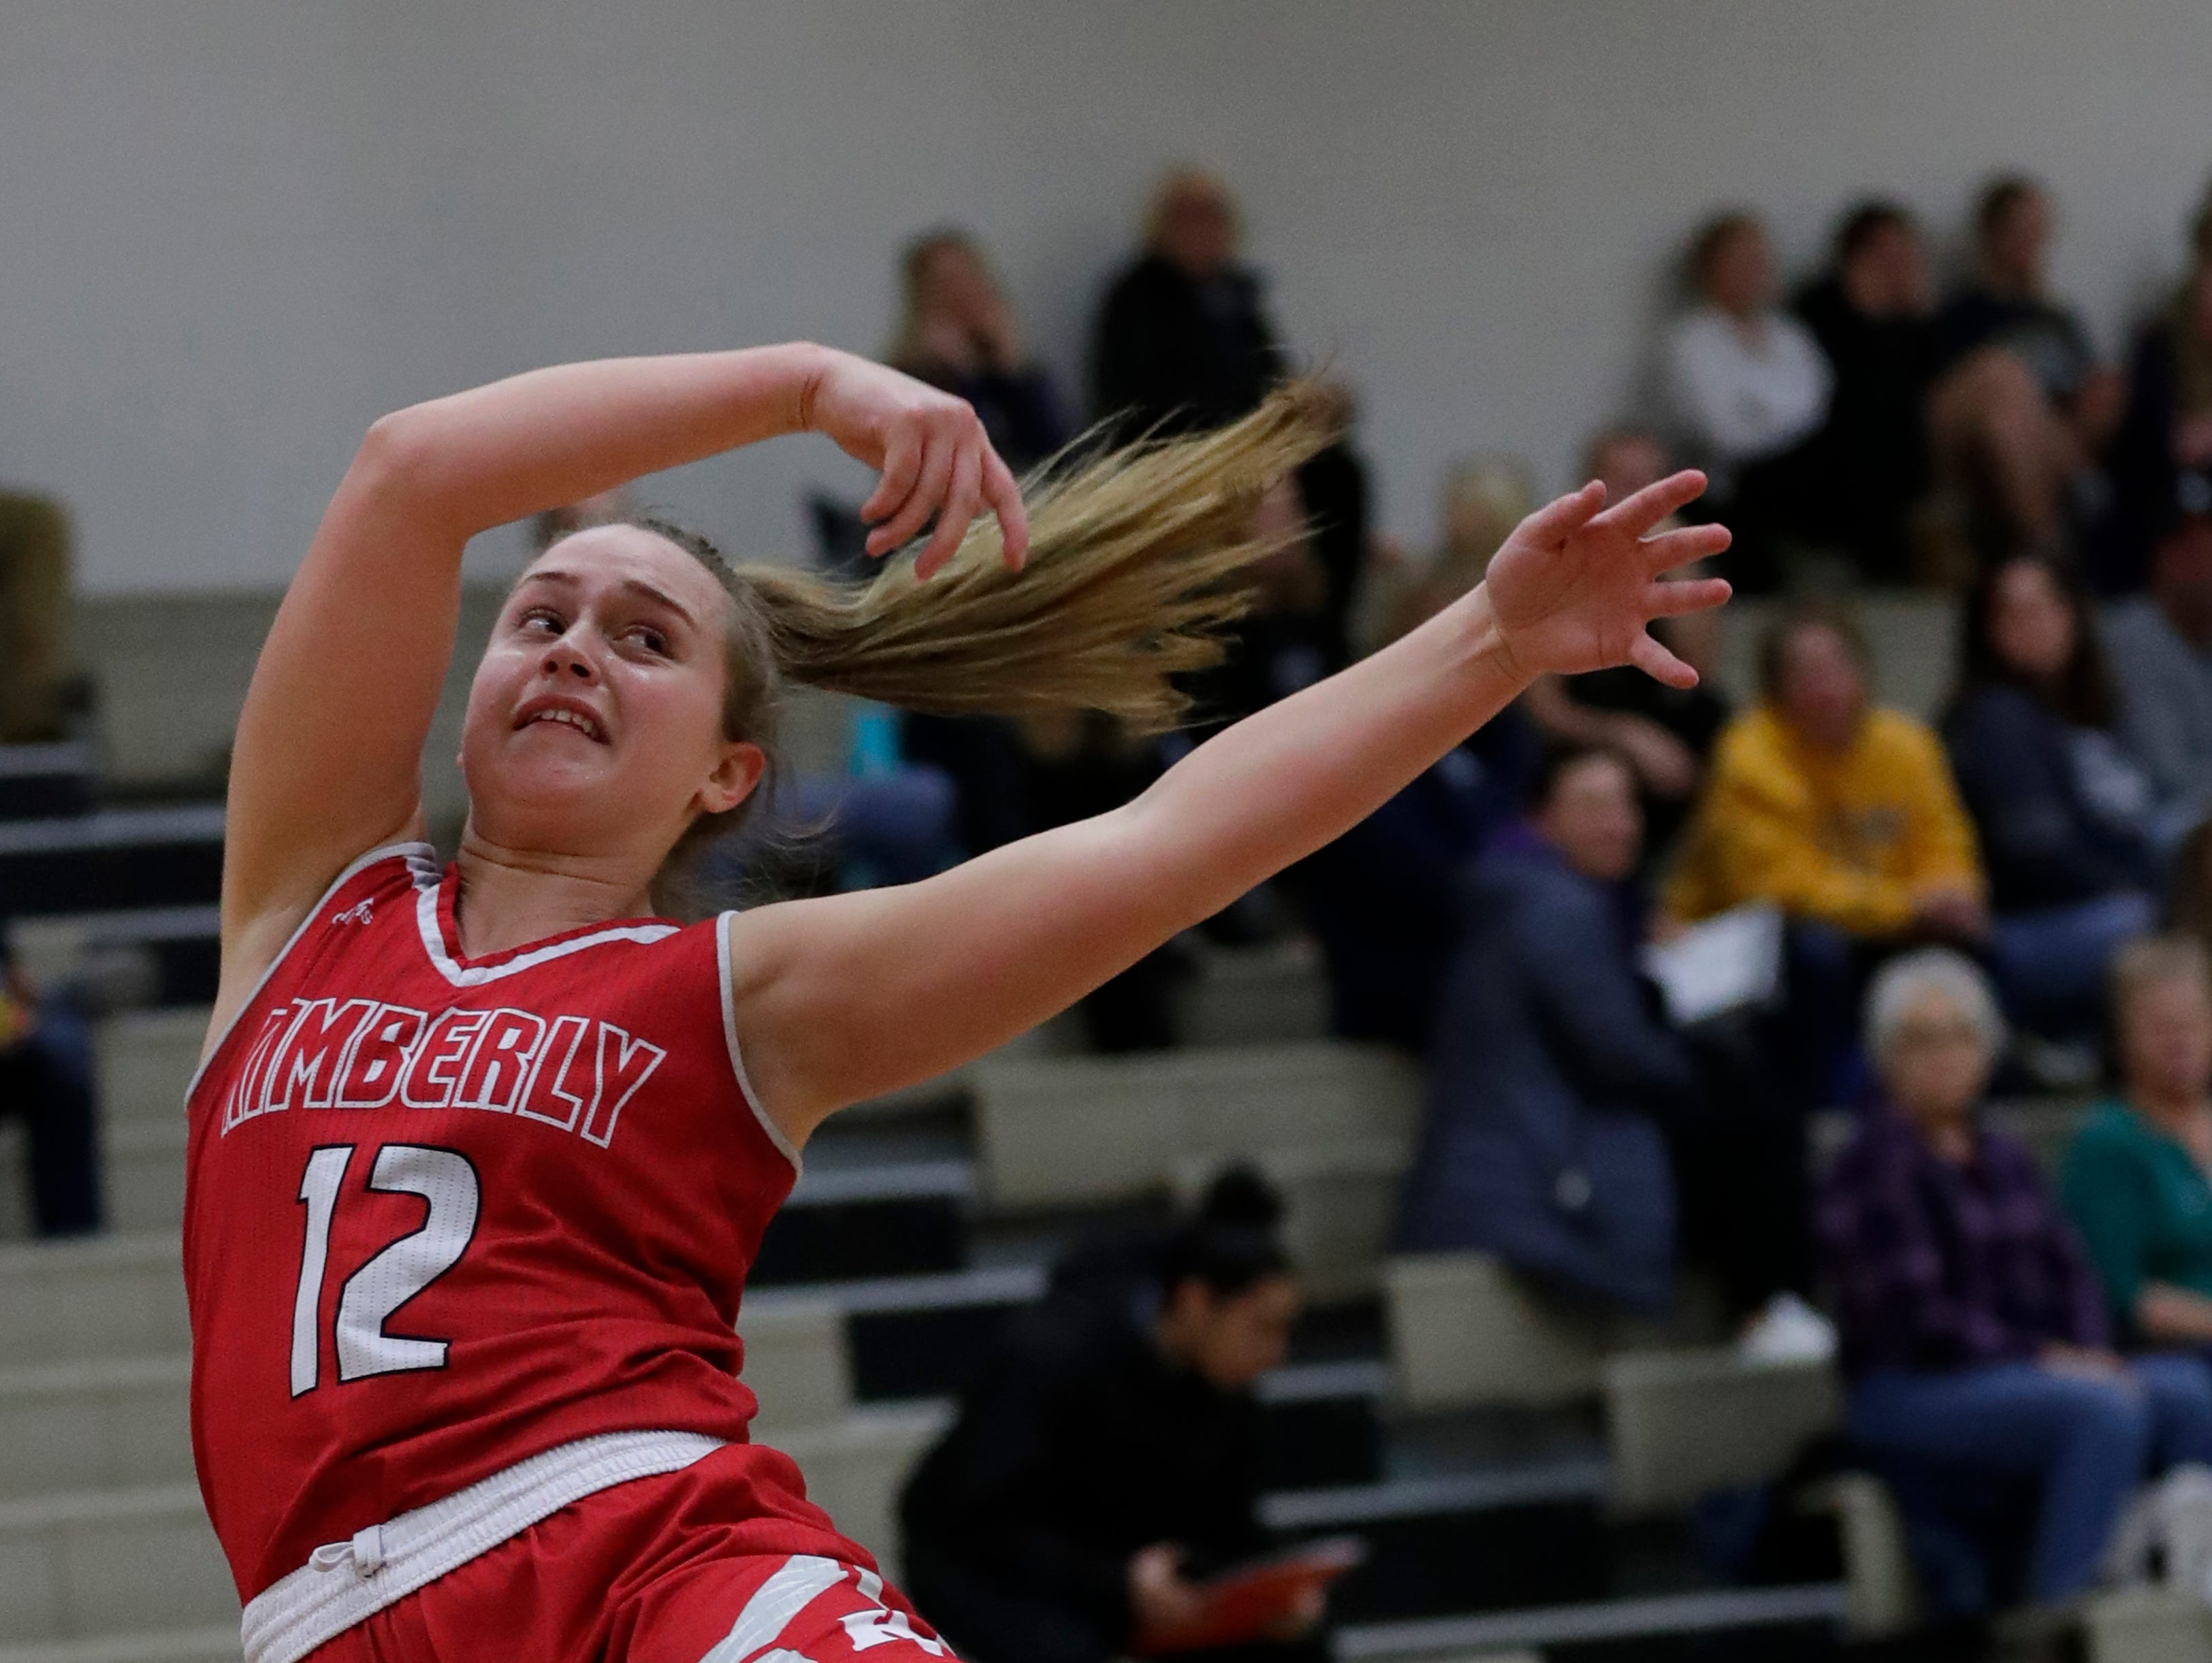 Kimberly High School's Kiara Schmidt (12) tries to keep the ball from going out of bounds against Appleton North High School during their girls basketball game Tuesday, January 8, 2019, in Appleton, Wis. 